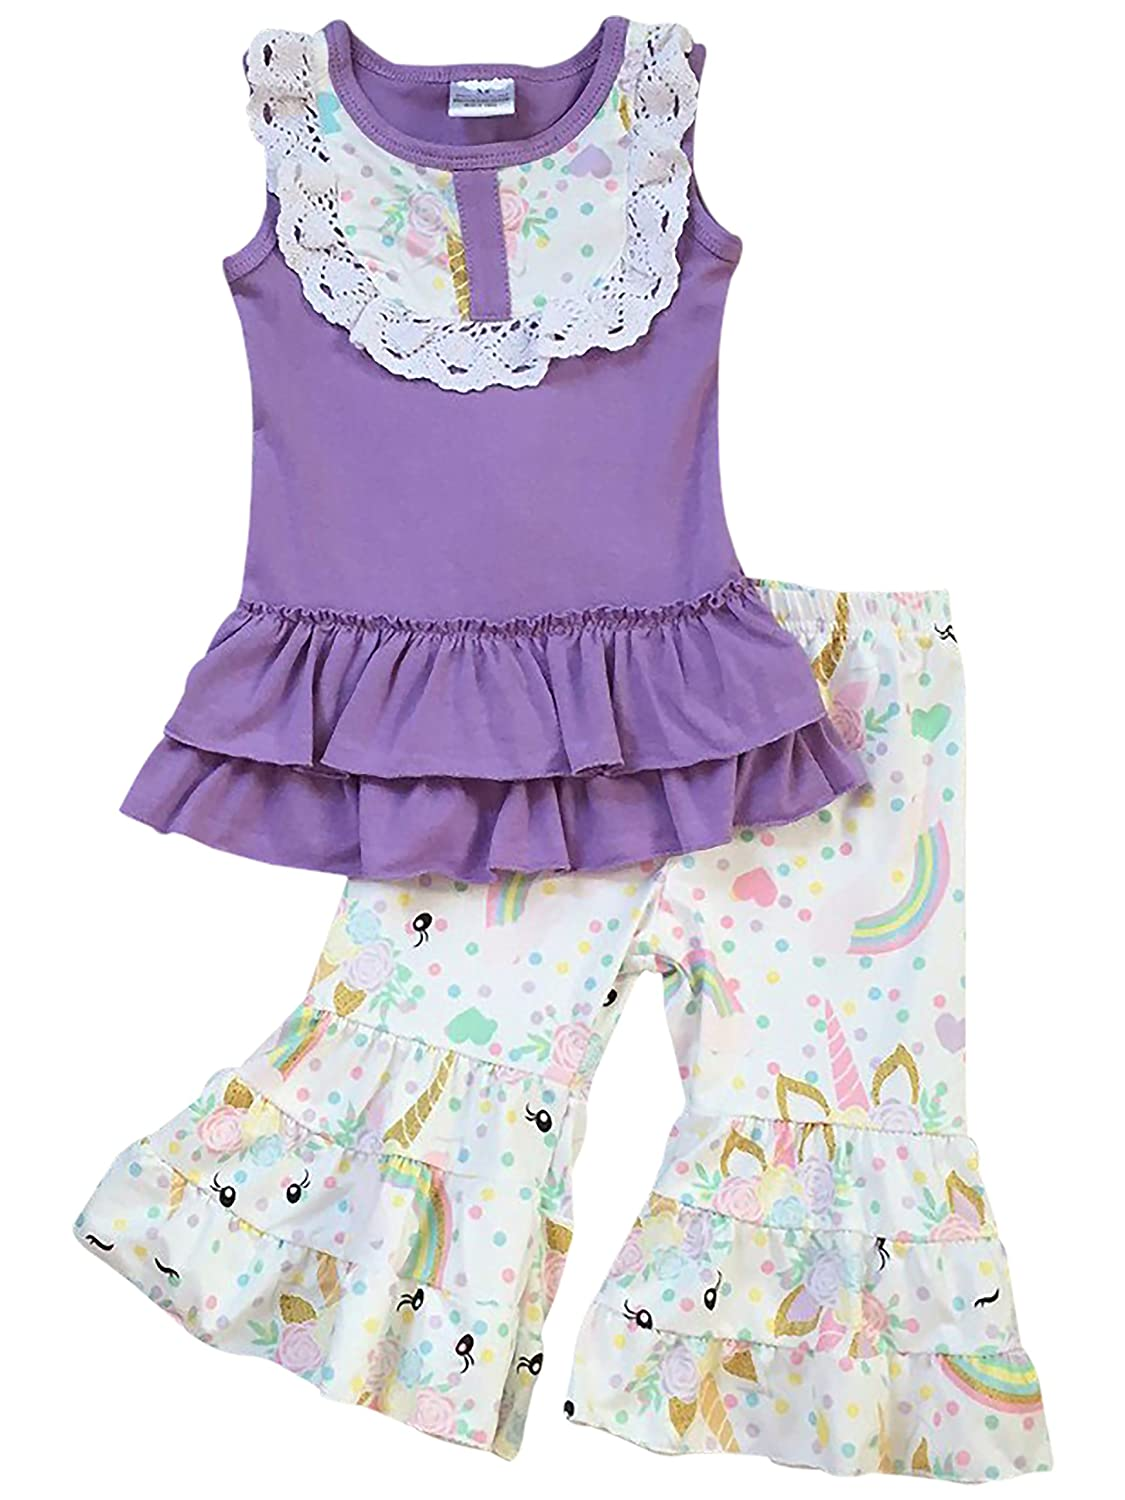 af2e2c2c39b31 Toddler & Girl 2 Pieces Pant Set Unicorn Dress Ruffle Pants Outfit Pant Set  2T-8